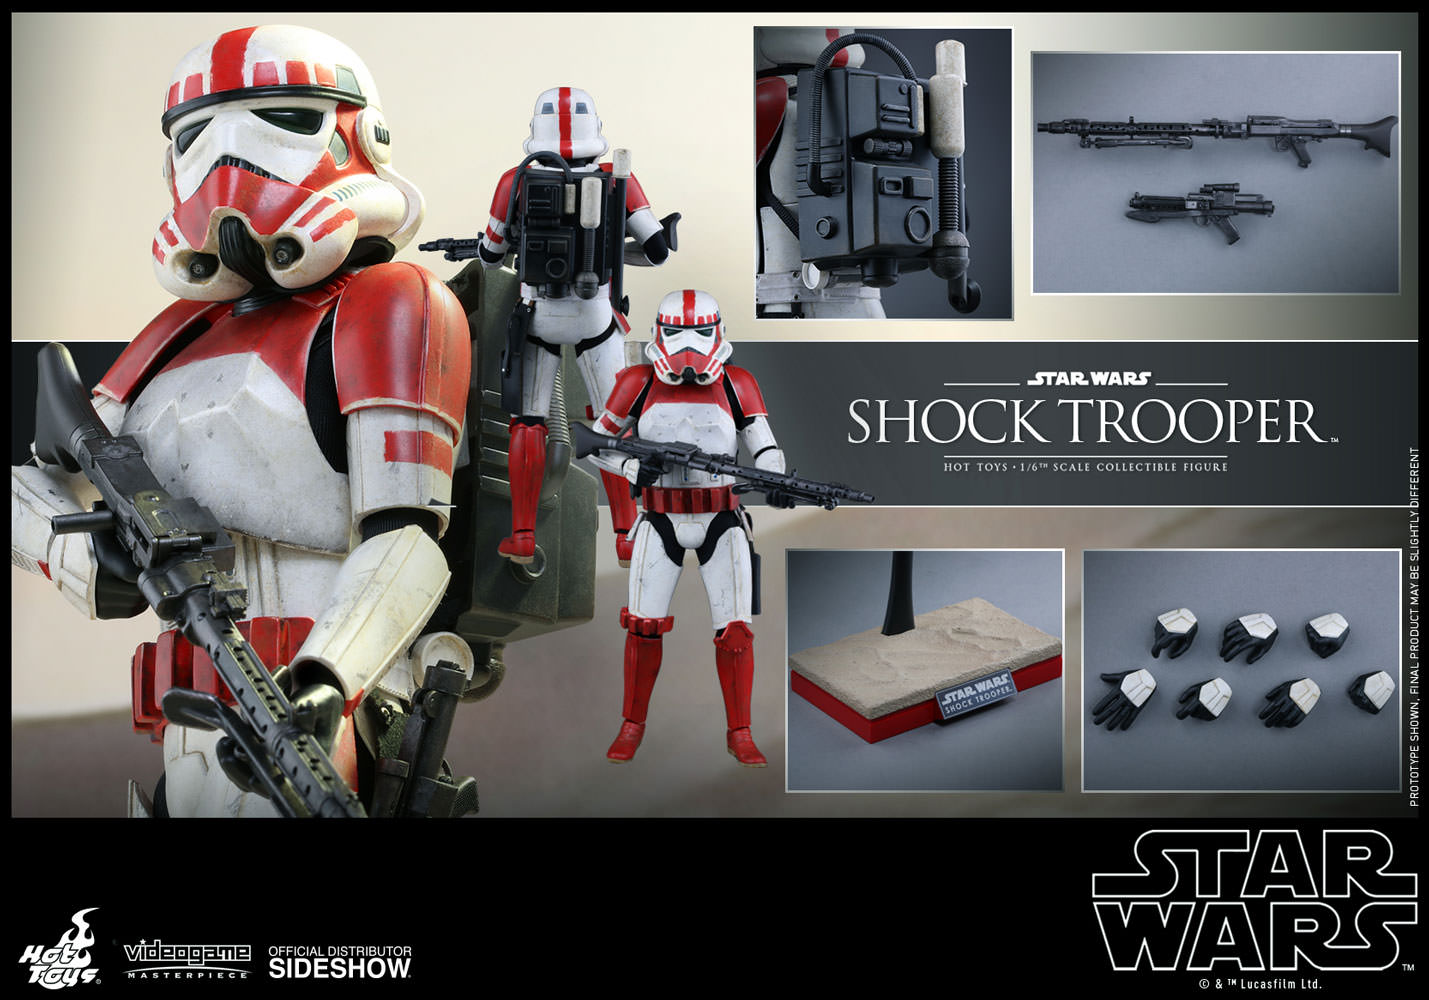 Star Wars Shock Trooper Sixth Scale Figure By Hot Toys Sideshow 1 6